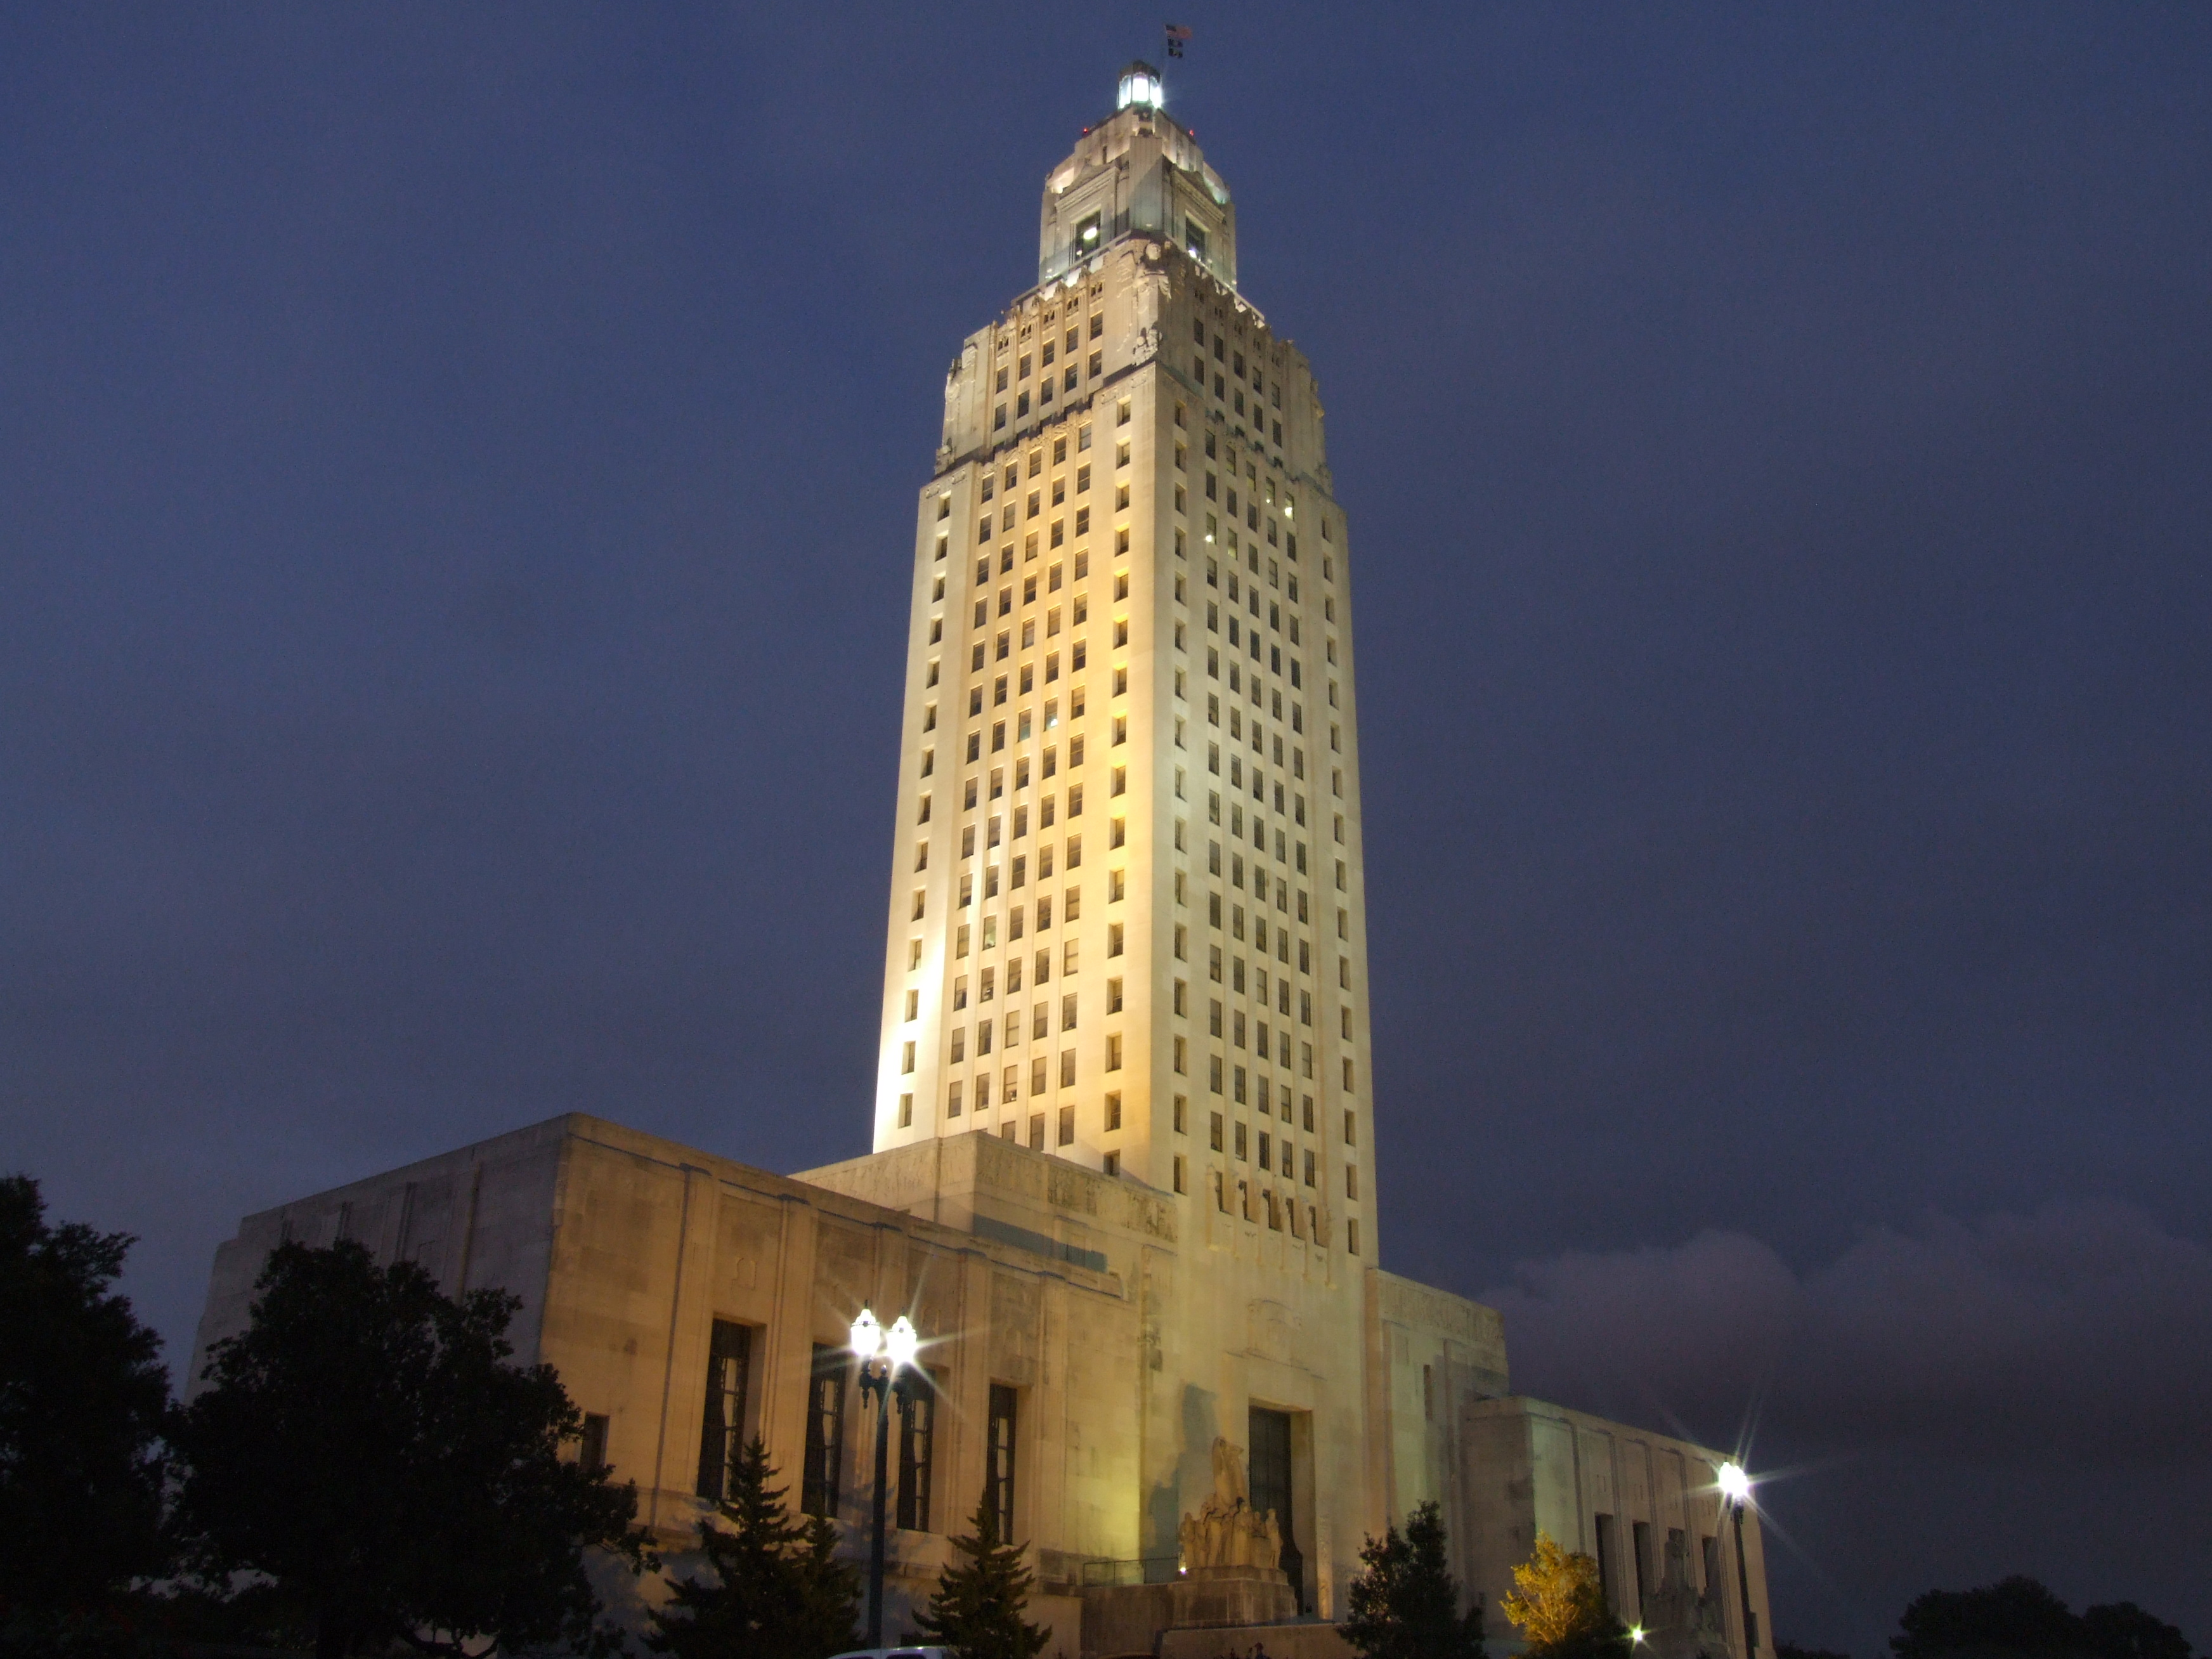 Louisiana_State_Capitol_at_night